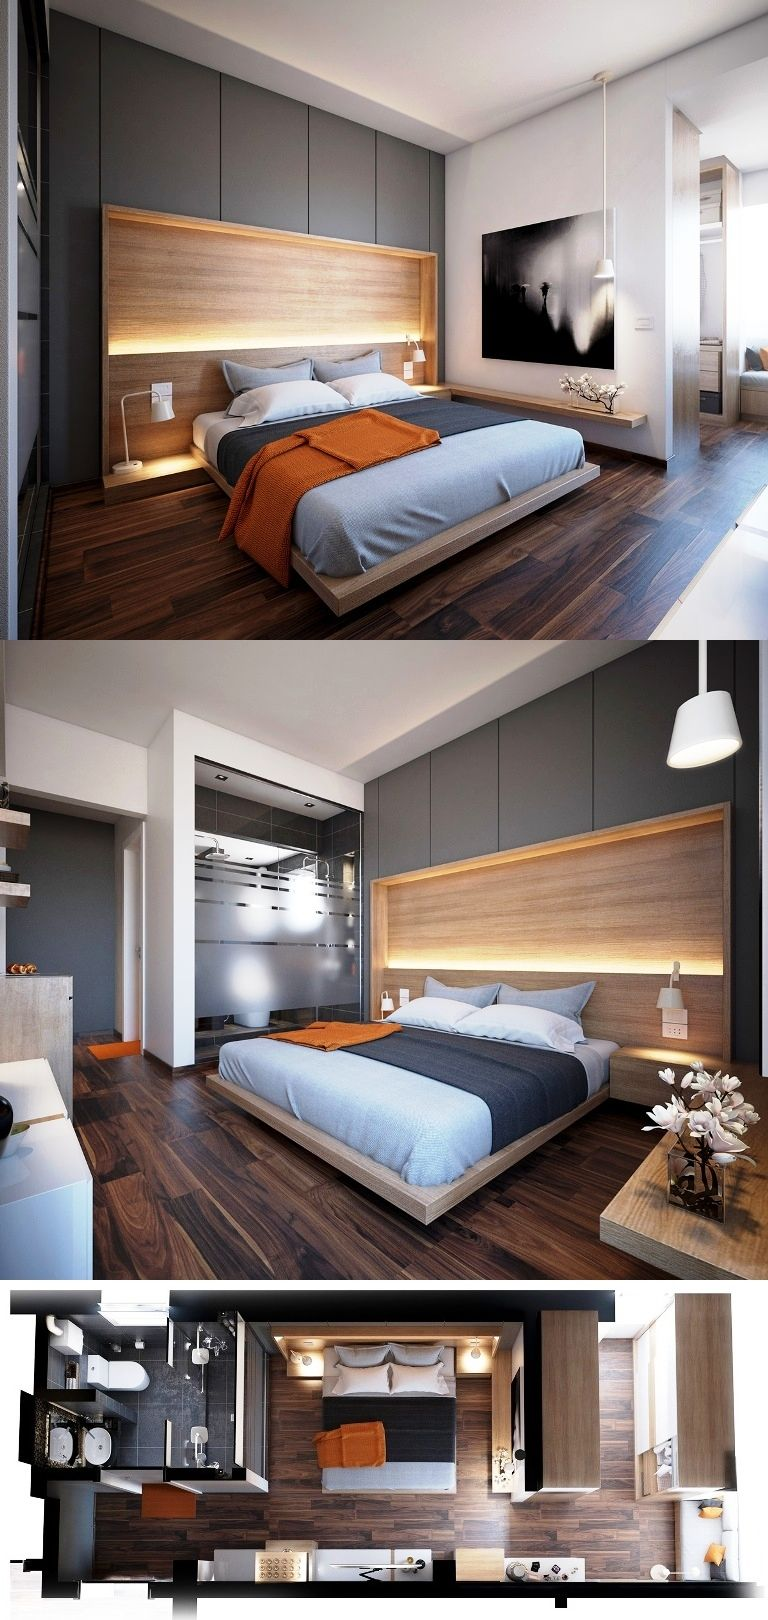 4 Luxury Bedrooms With Unique Wall Details Luxurious Bedrooms Bedroom Design Bedroom Bed Design